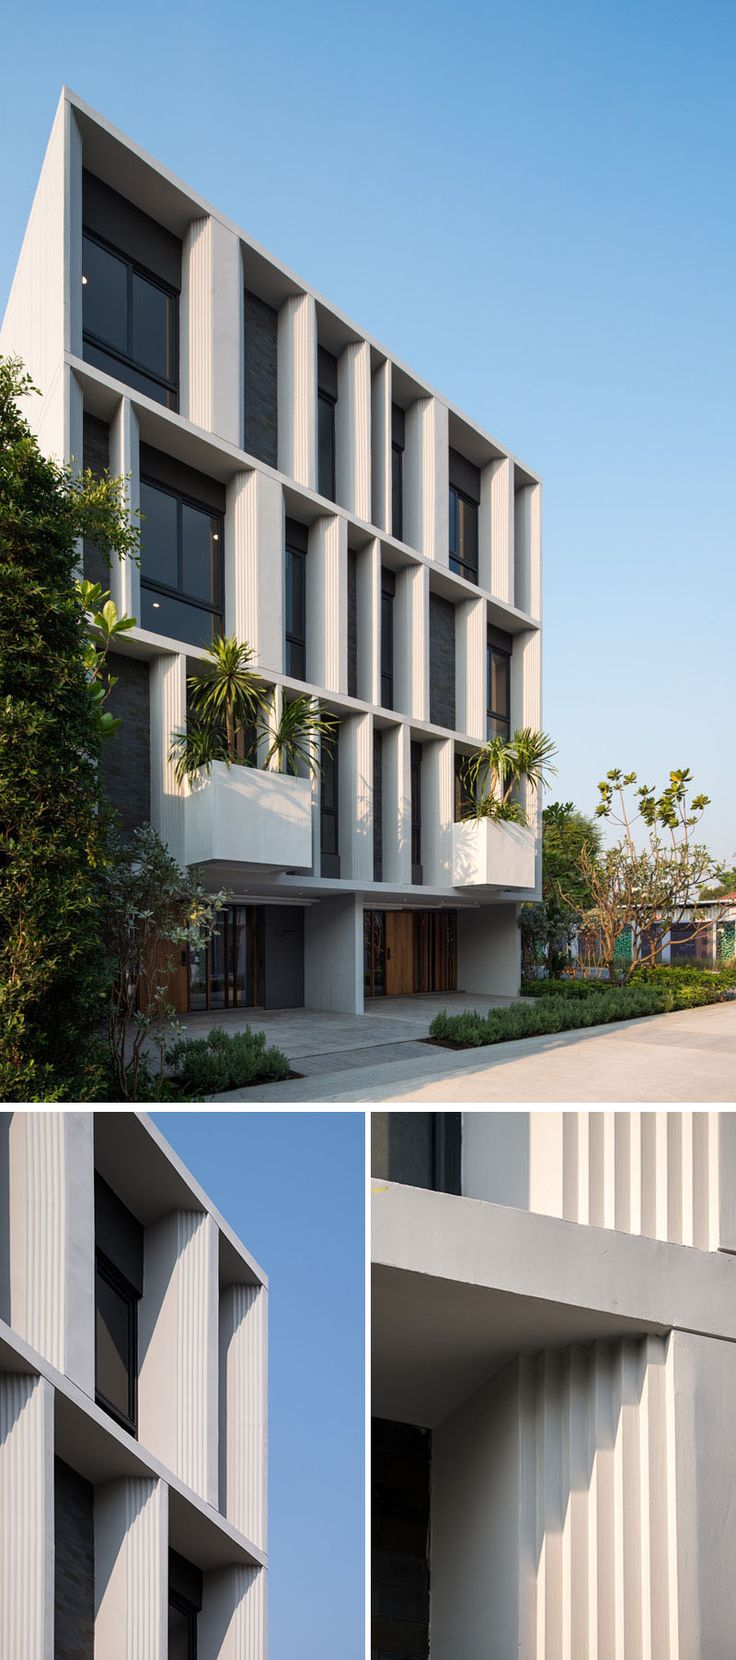 Architecture firm Baan puripuri have recently completed this pair of three storey townhouses in a vibrant neighborhood of Bangkok Thailand.